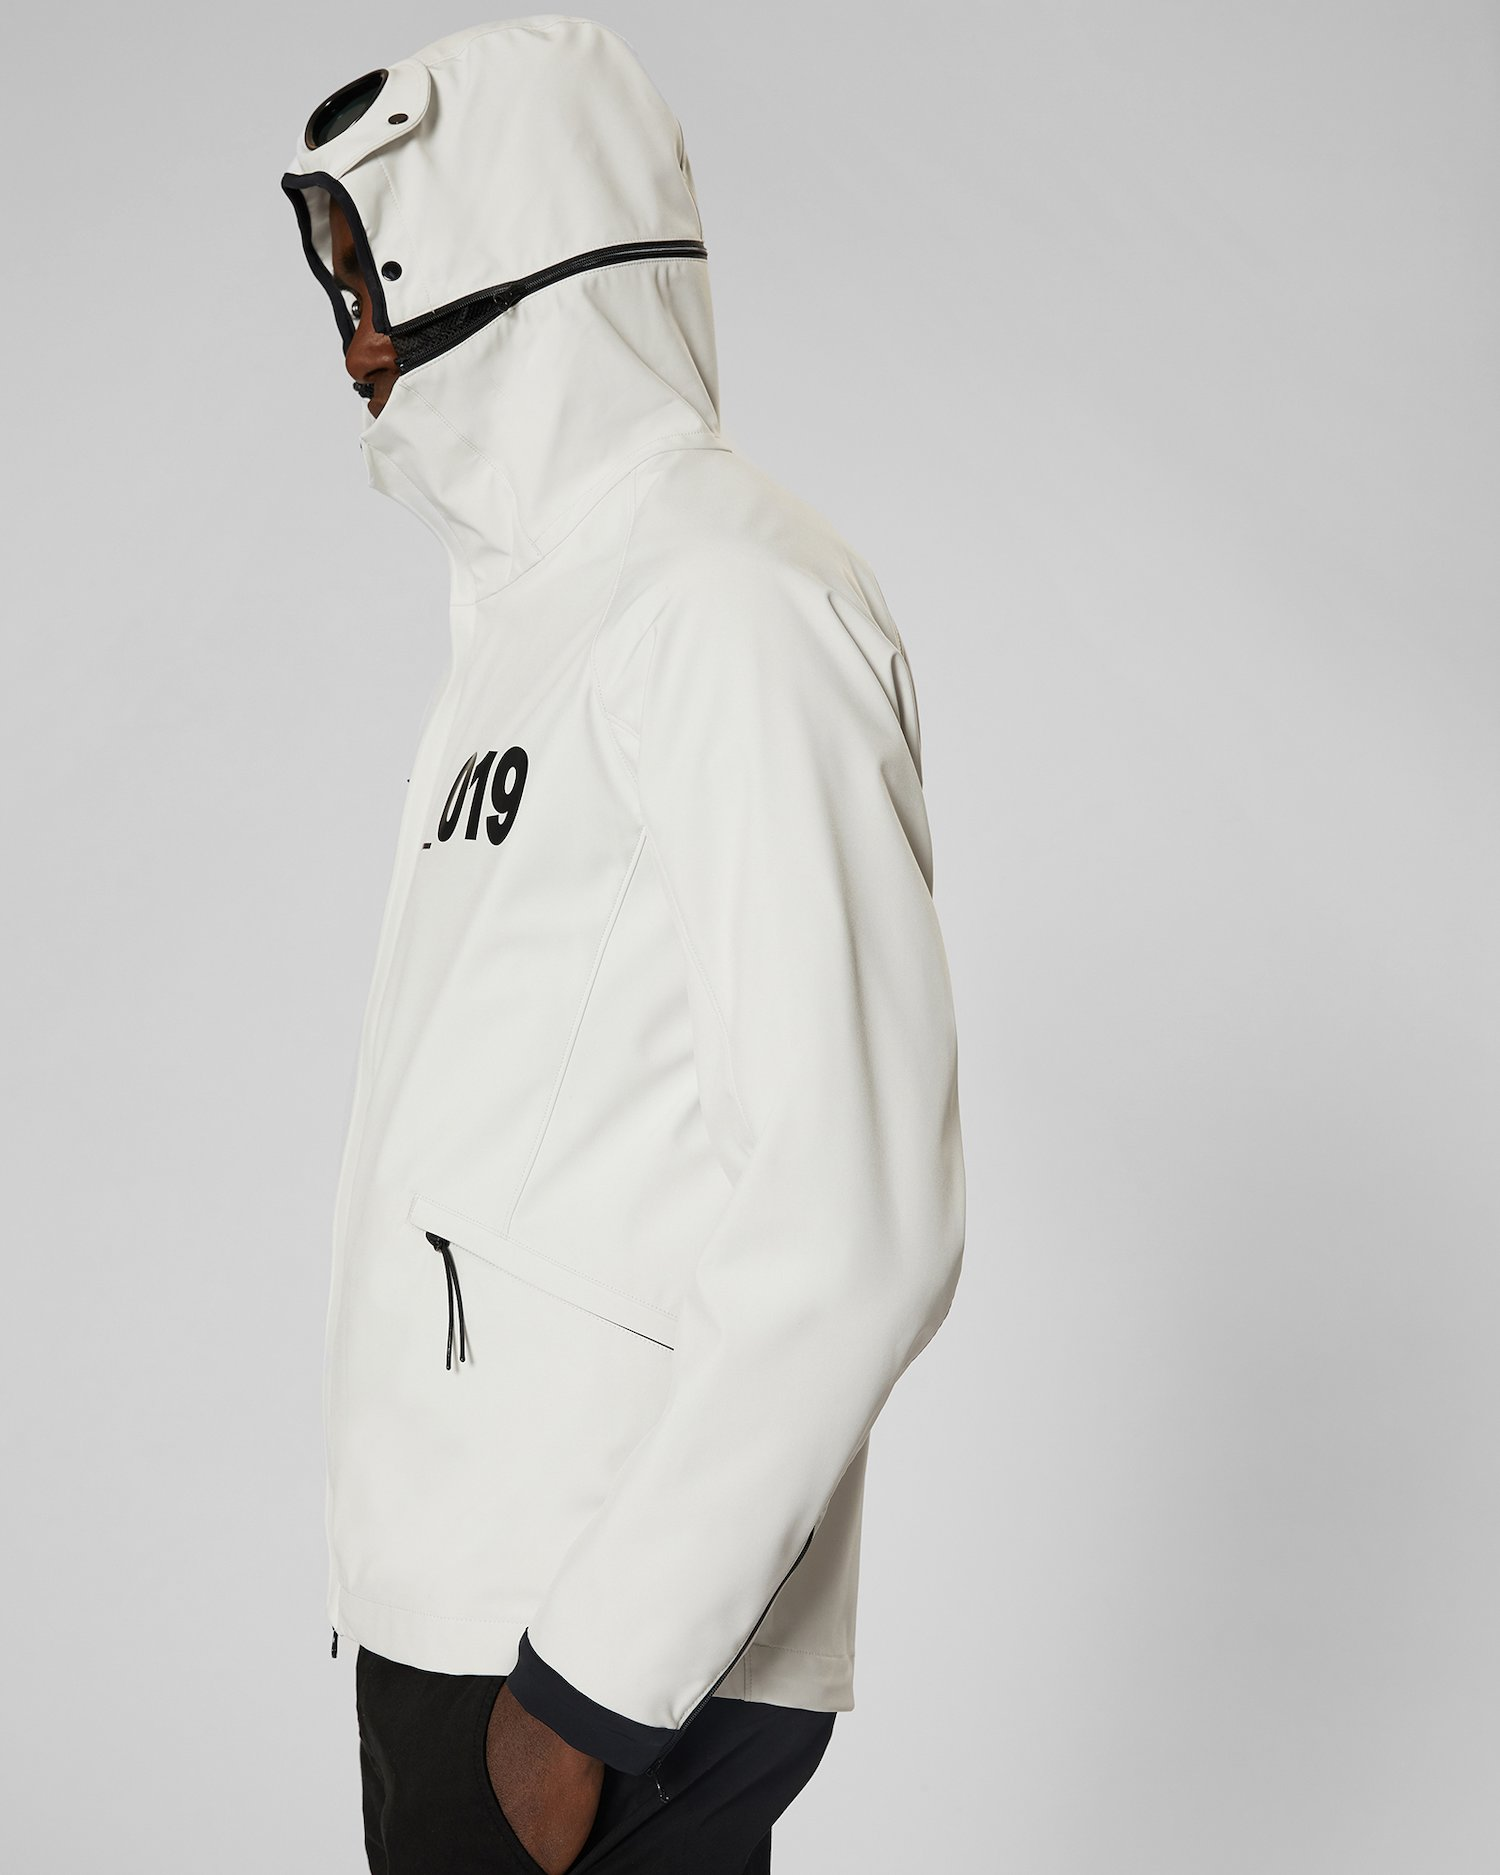 d45e542914 C.p. Shell Goggle Jacket In Gauze White